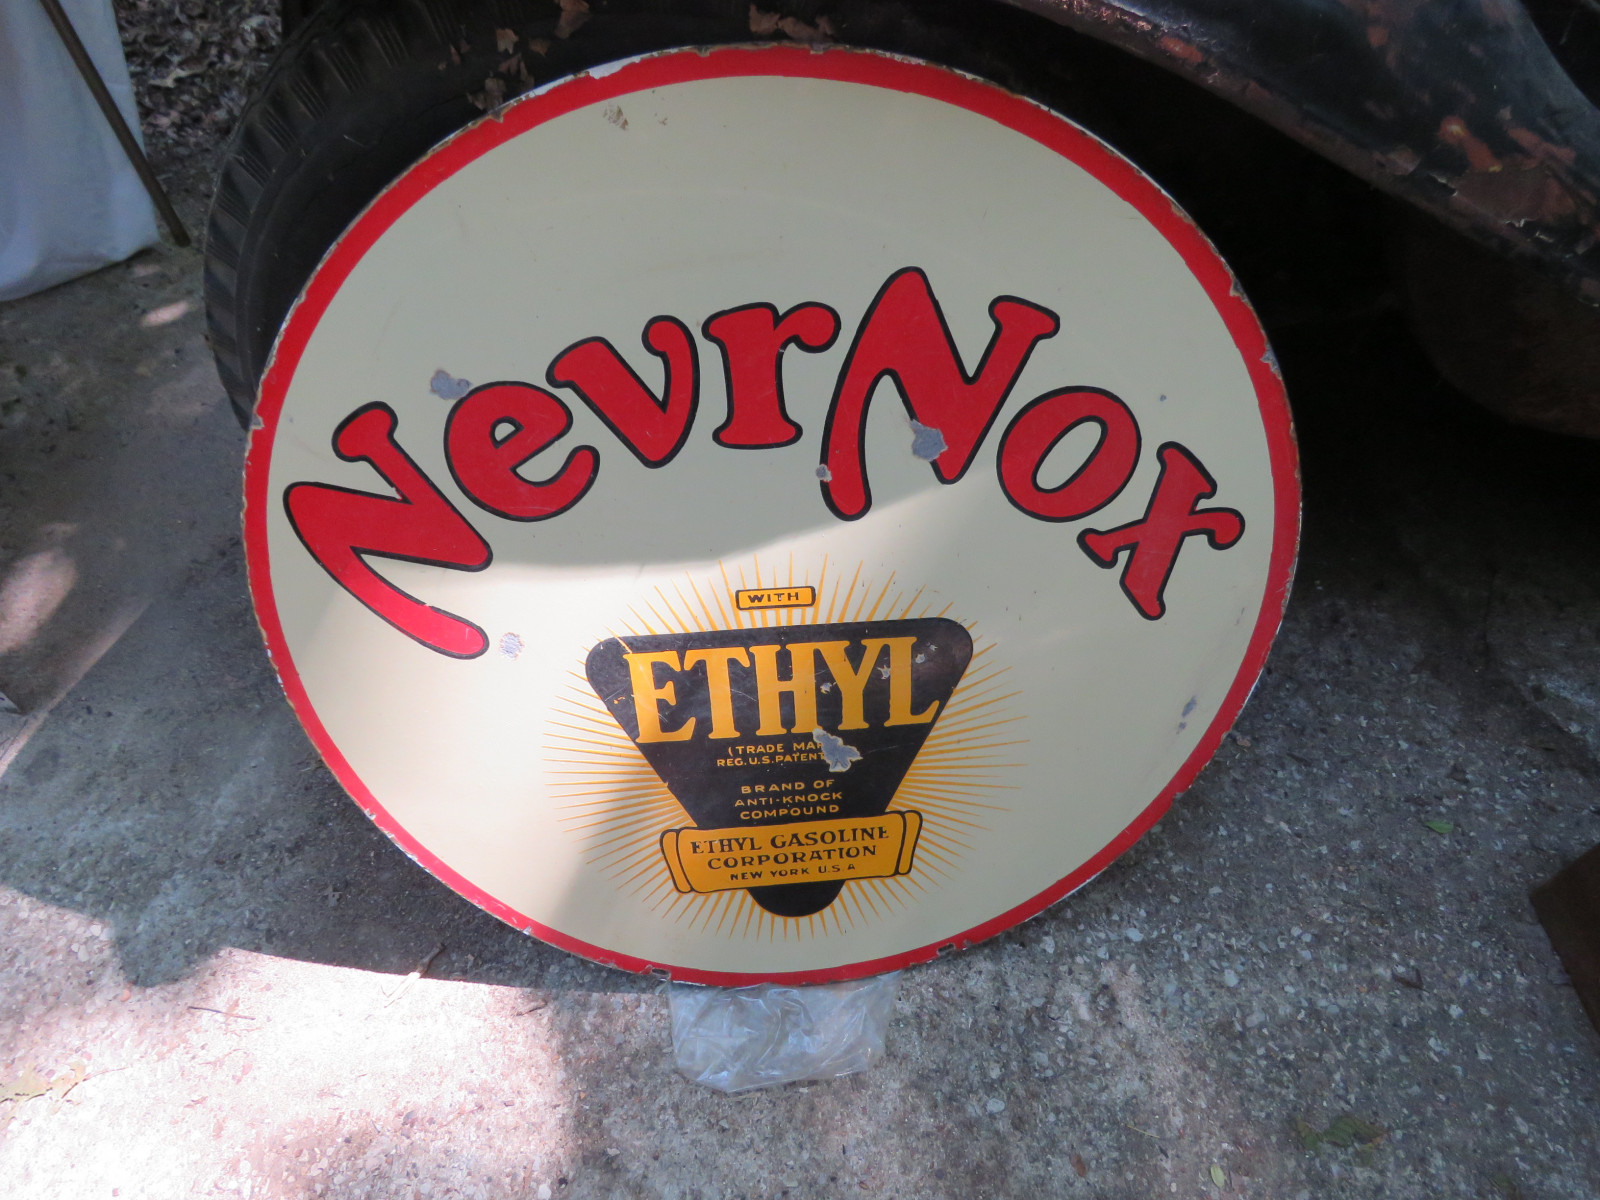 Never-Nox DS Porcelain Sign 29 inches Round - Image 2